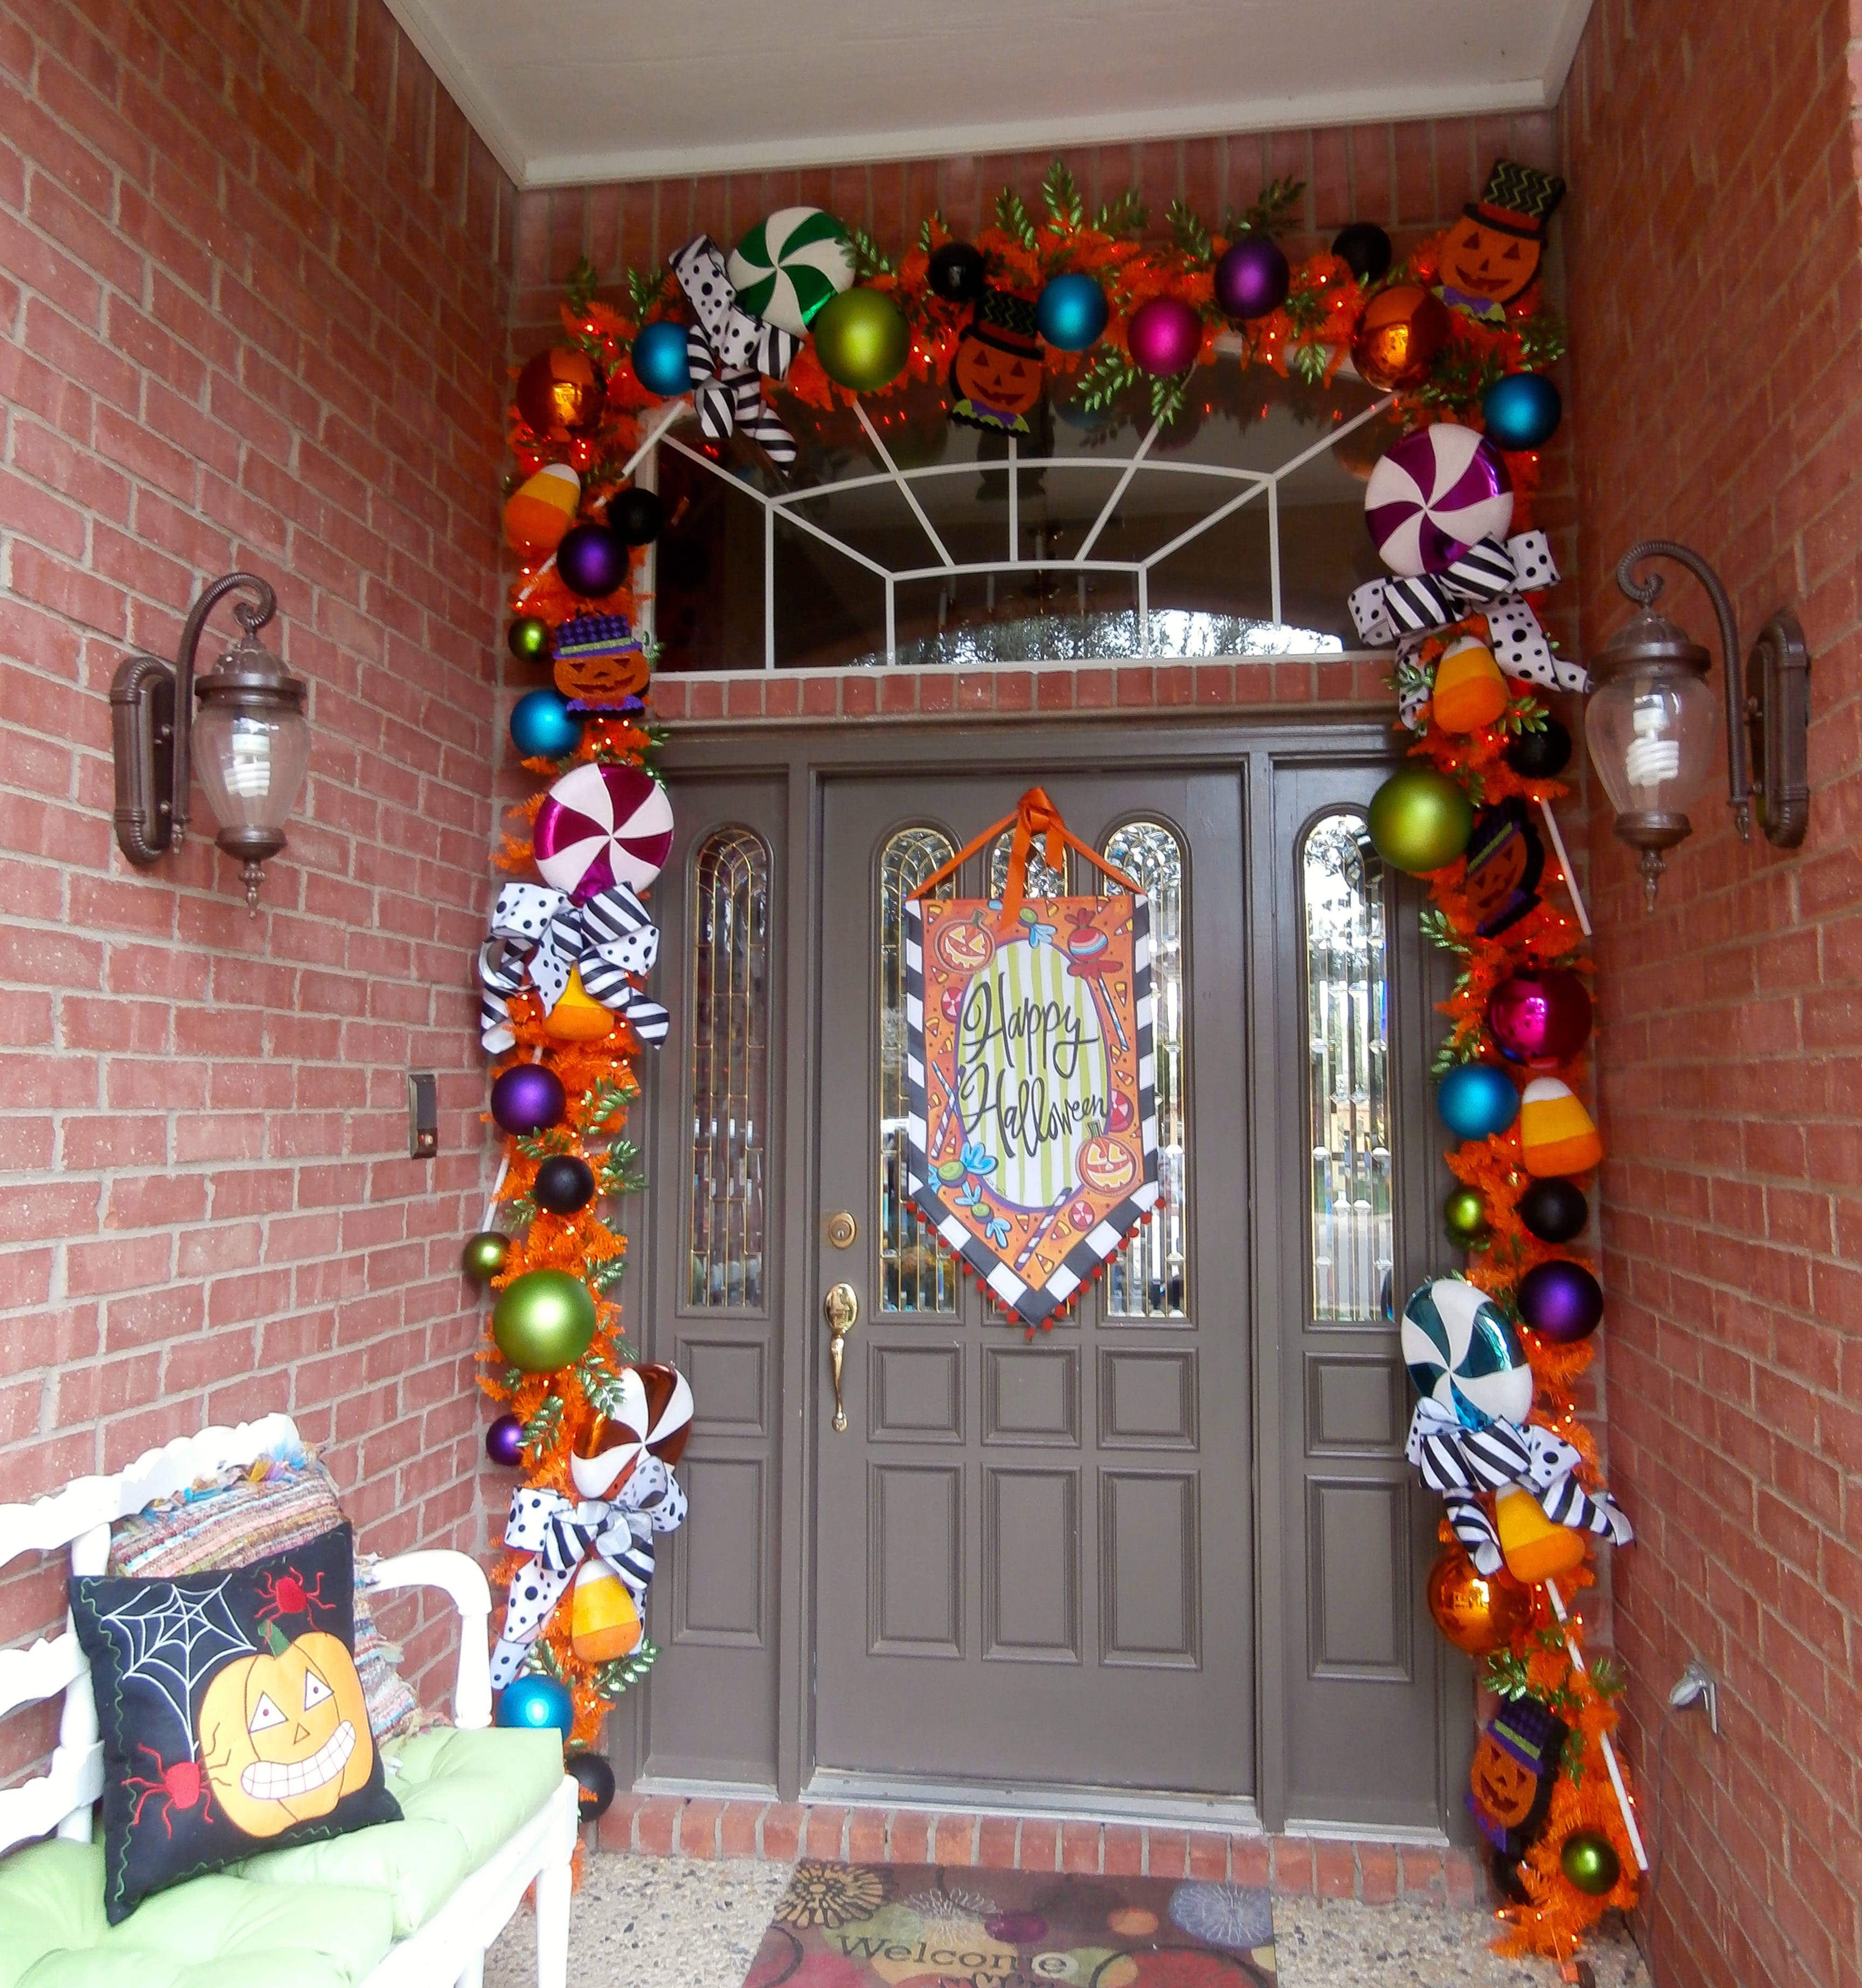 Decorated Halloween House: 2013 Decorating Ingredients Available Now To Decorate